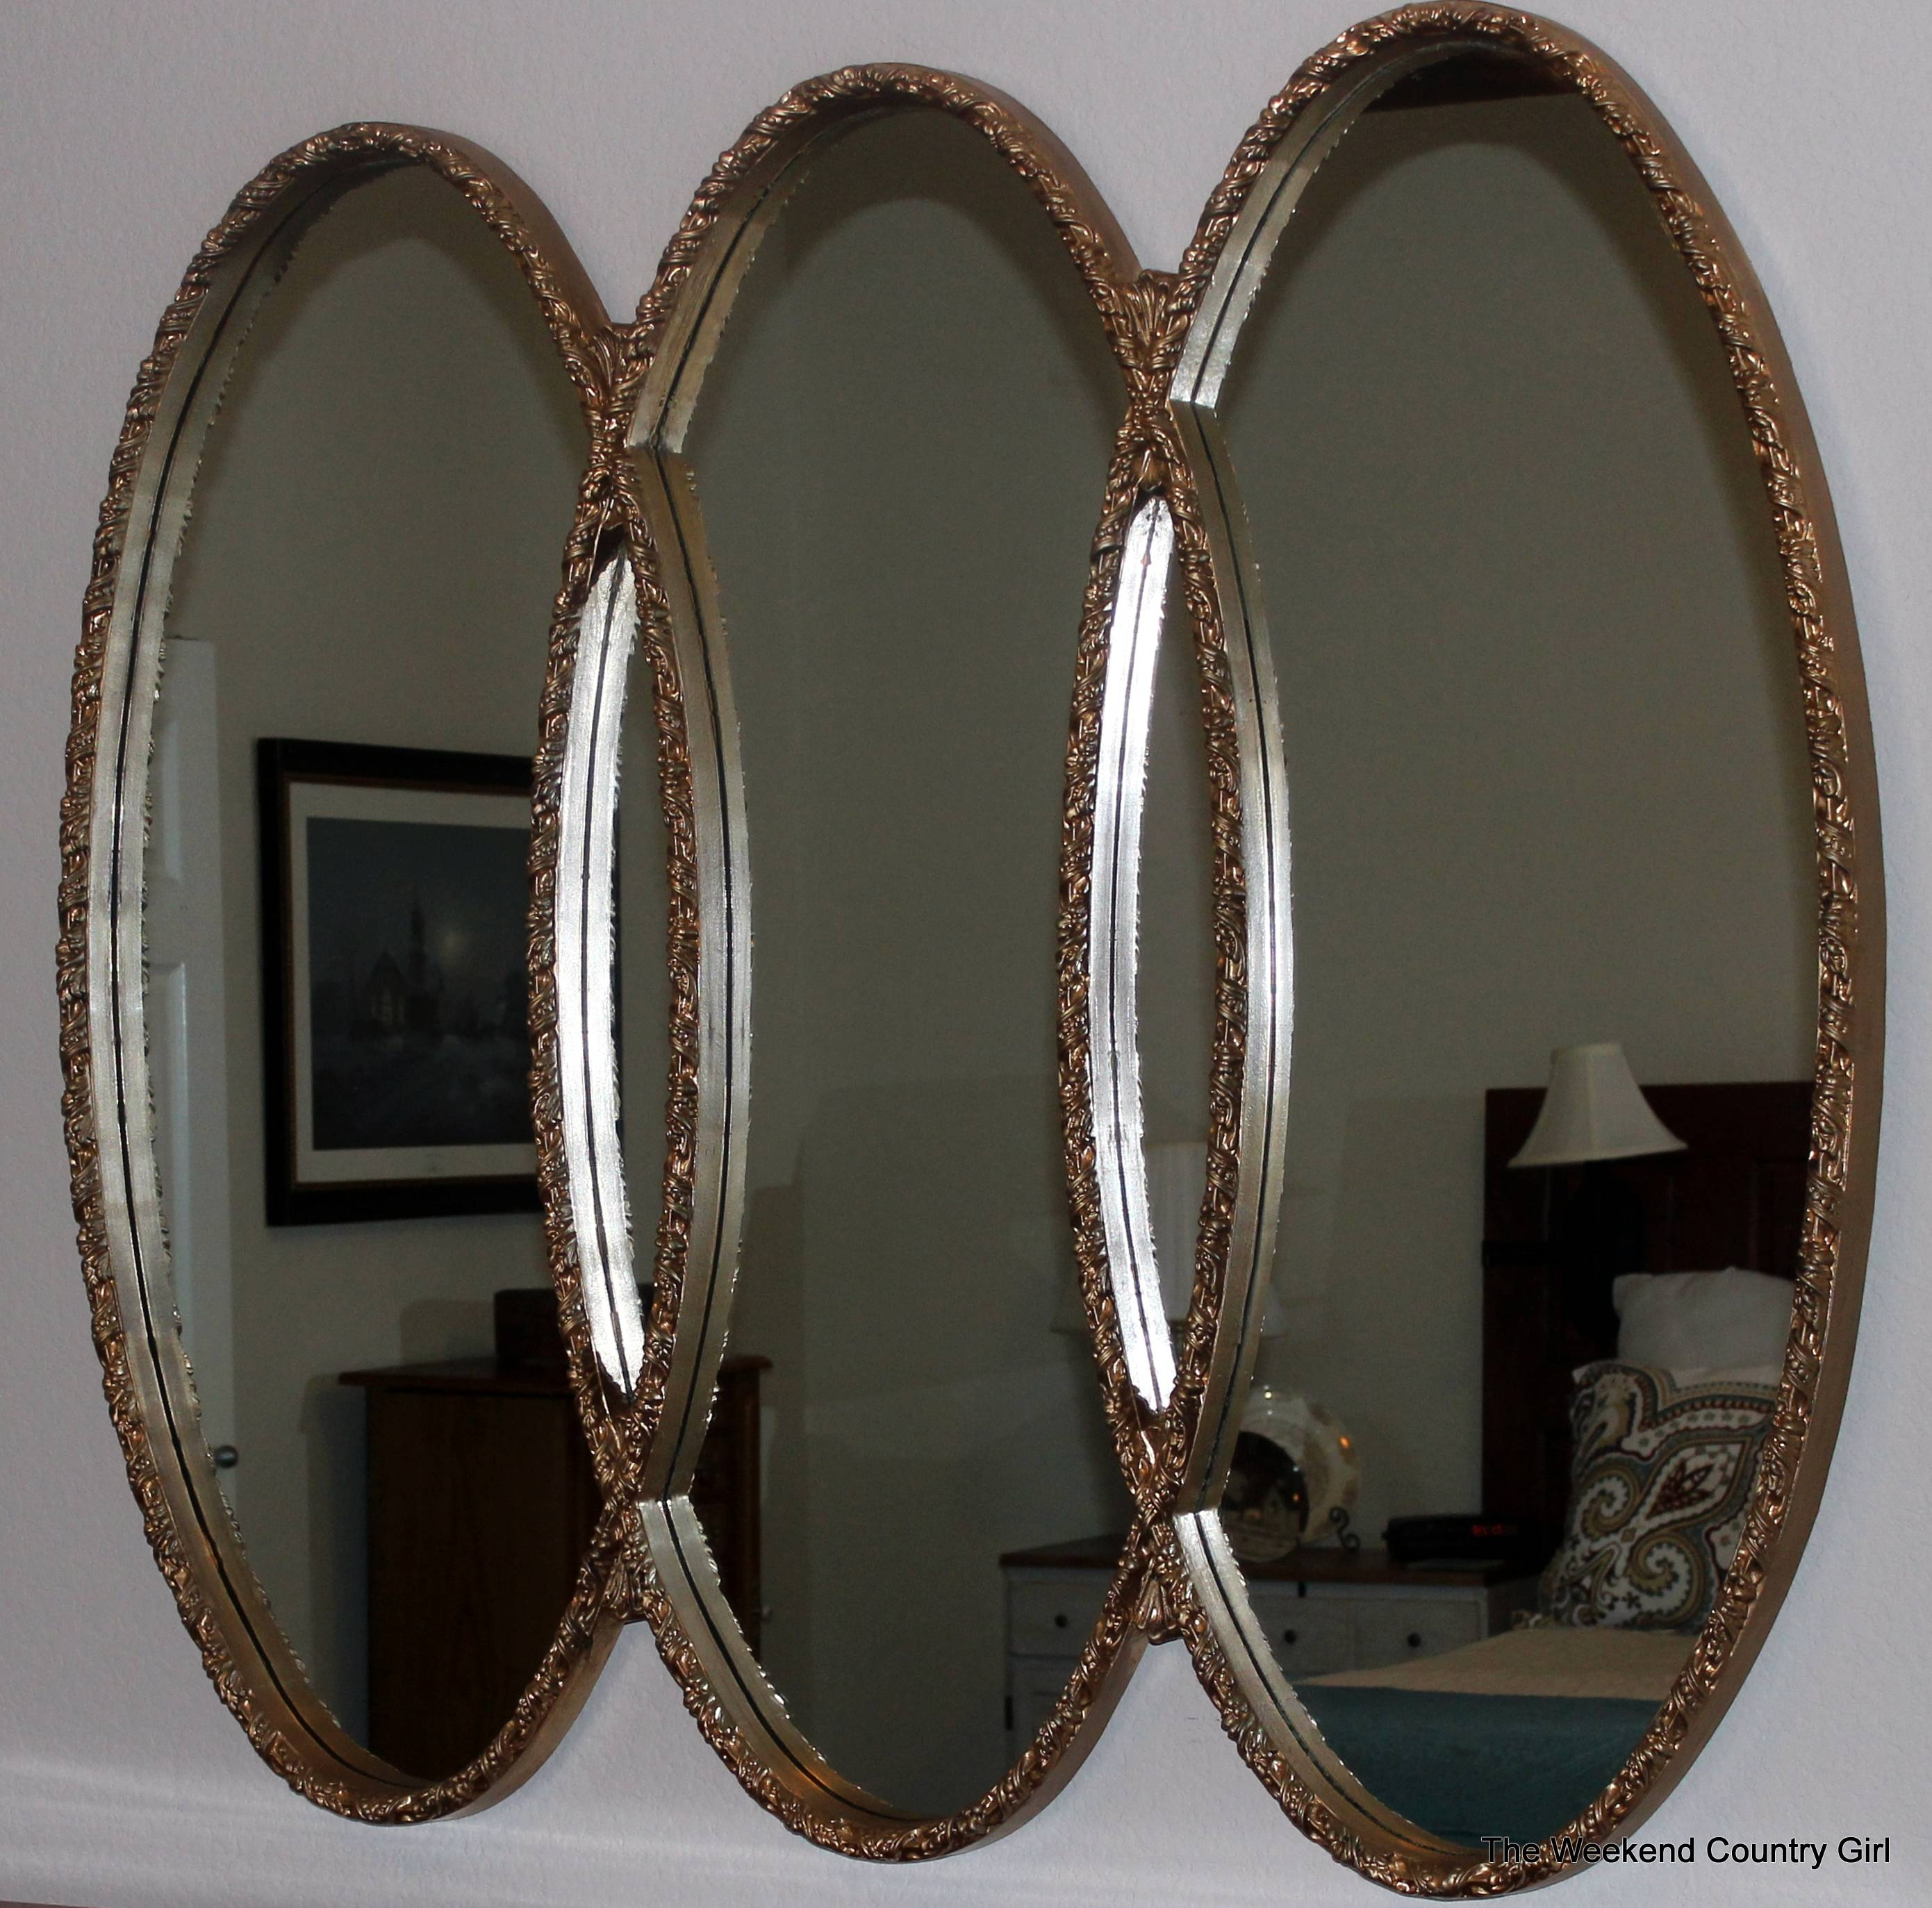 Syroco Triple Oval Mirror | The Weekend Country Girl for Triple Oval Mirrors (Image 19 of 25)